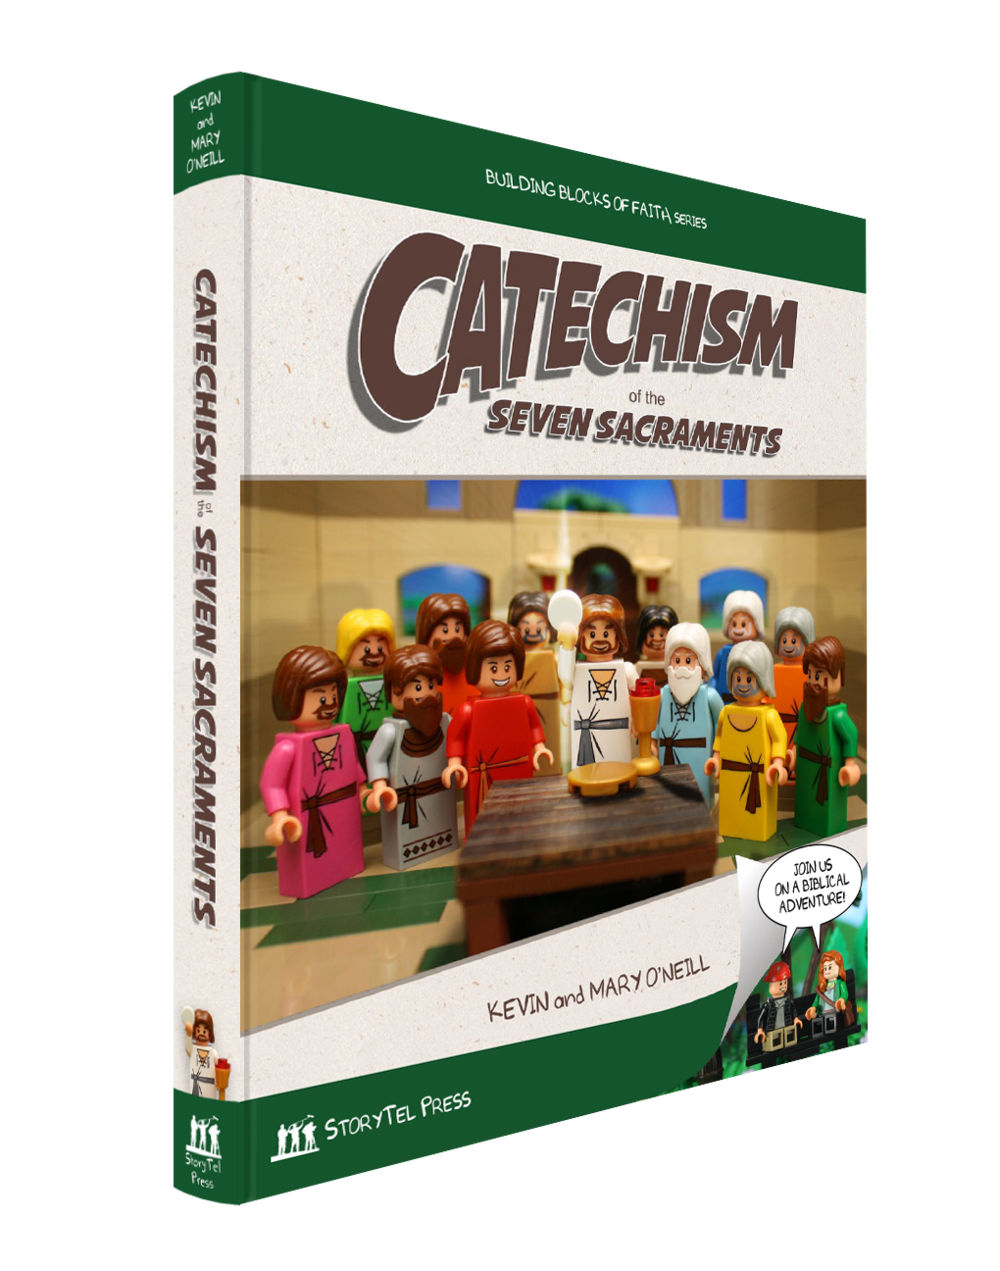 Catechism of the Seven Sacraments - ABCatholic